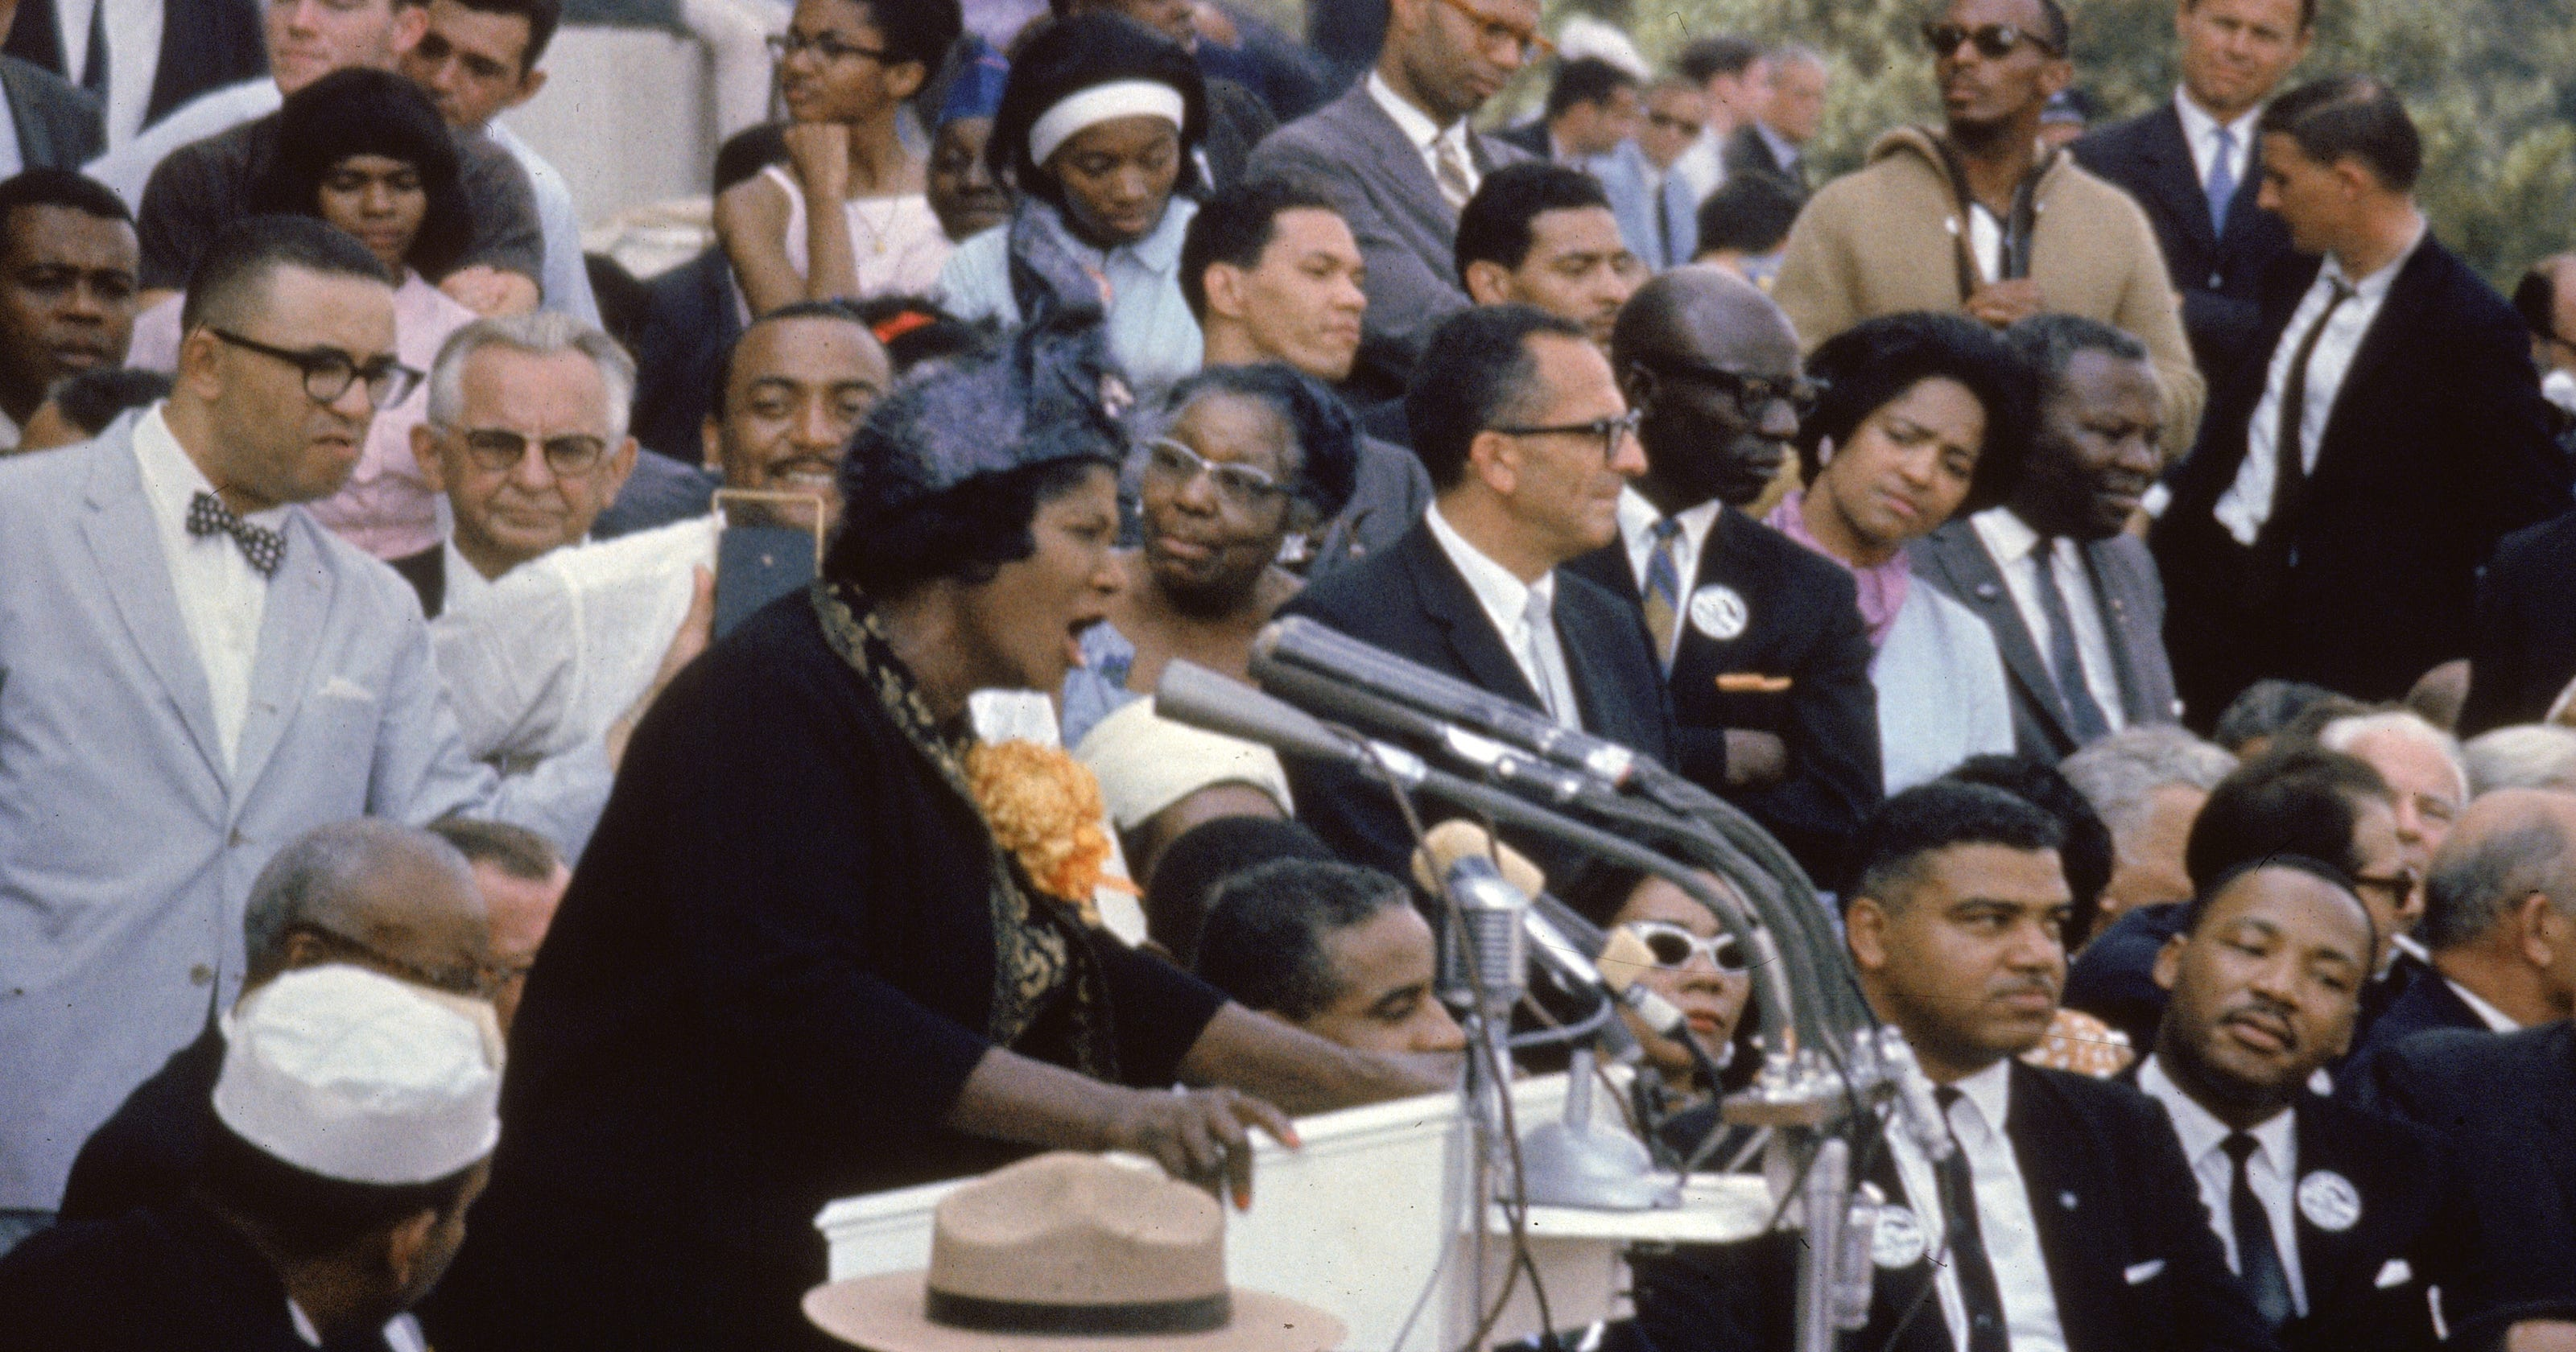 Race and harmony: Songs tied to the March on Washington